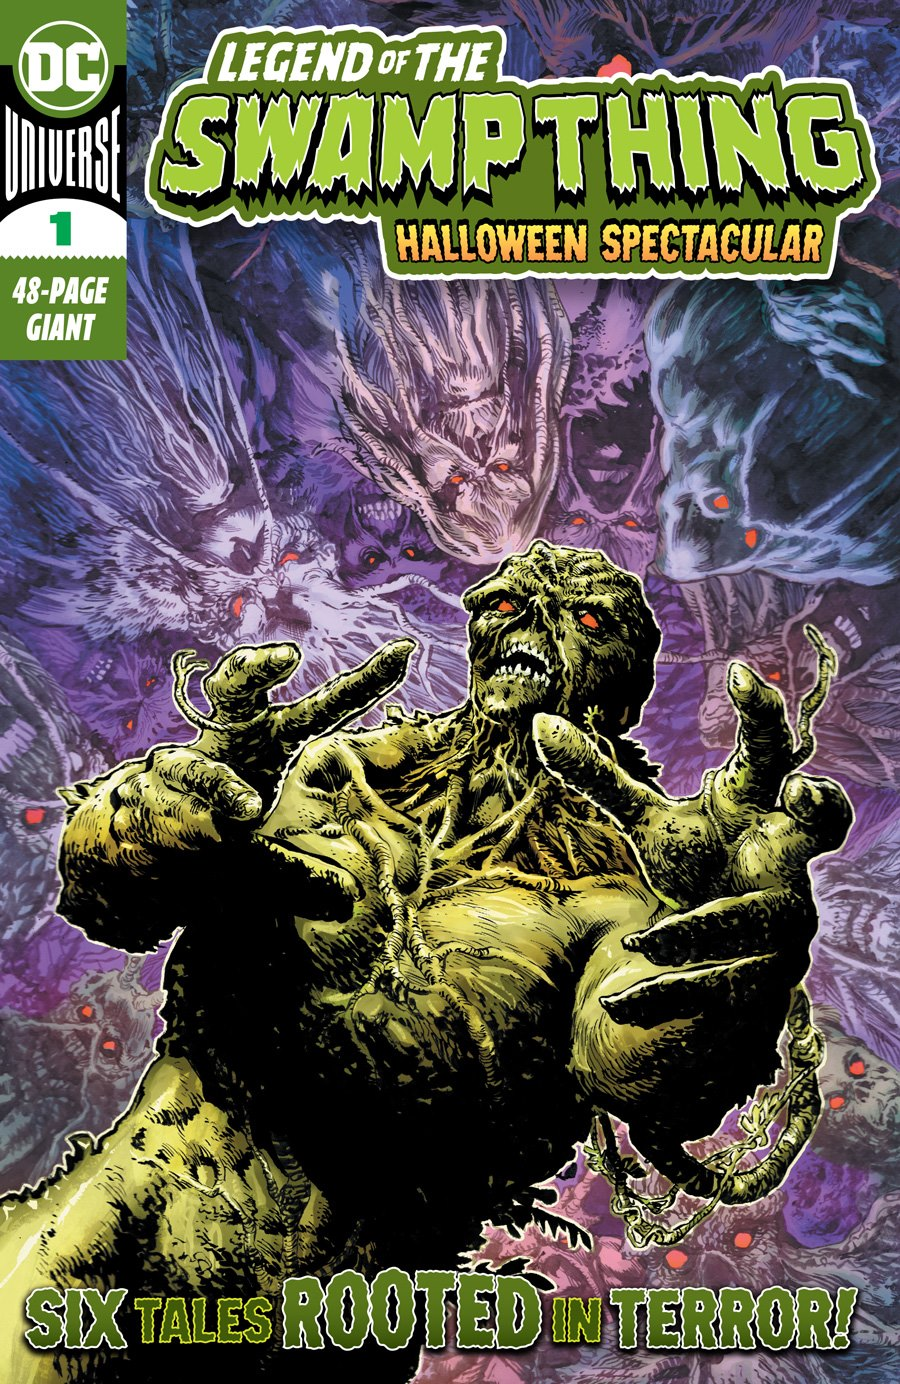 Legend of the Swamp Thing Halloween Special #1(one shot)